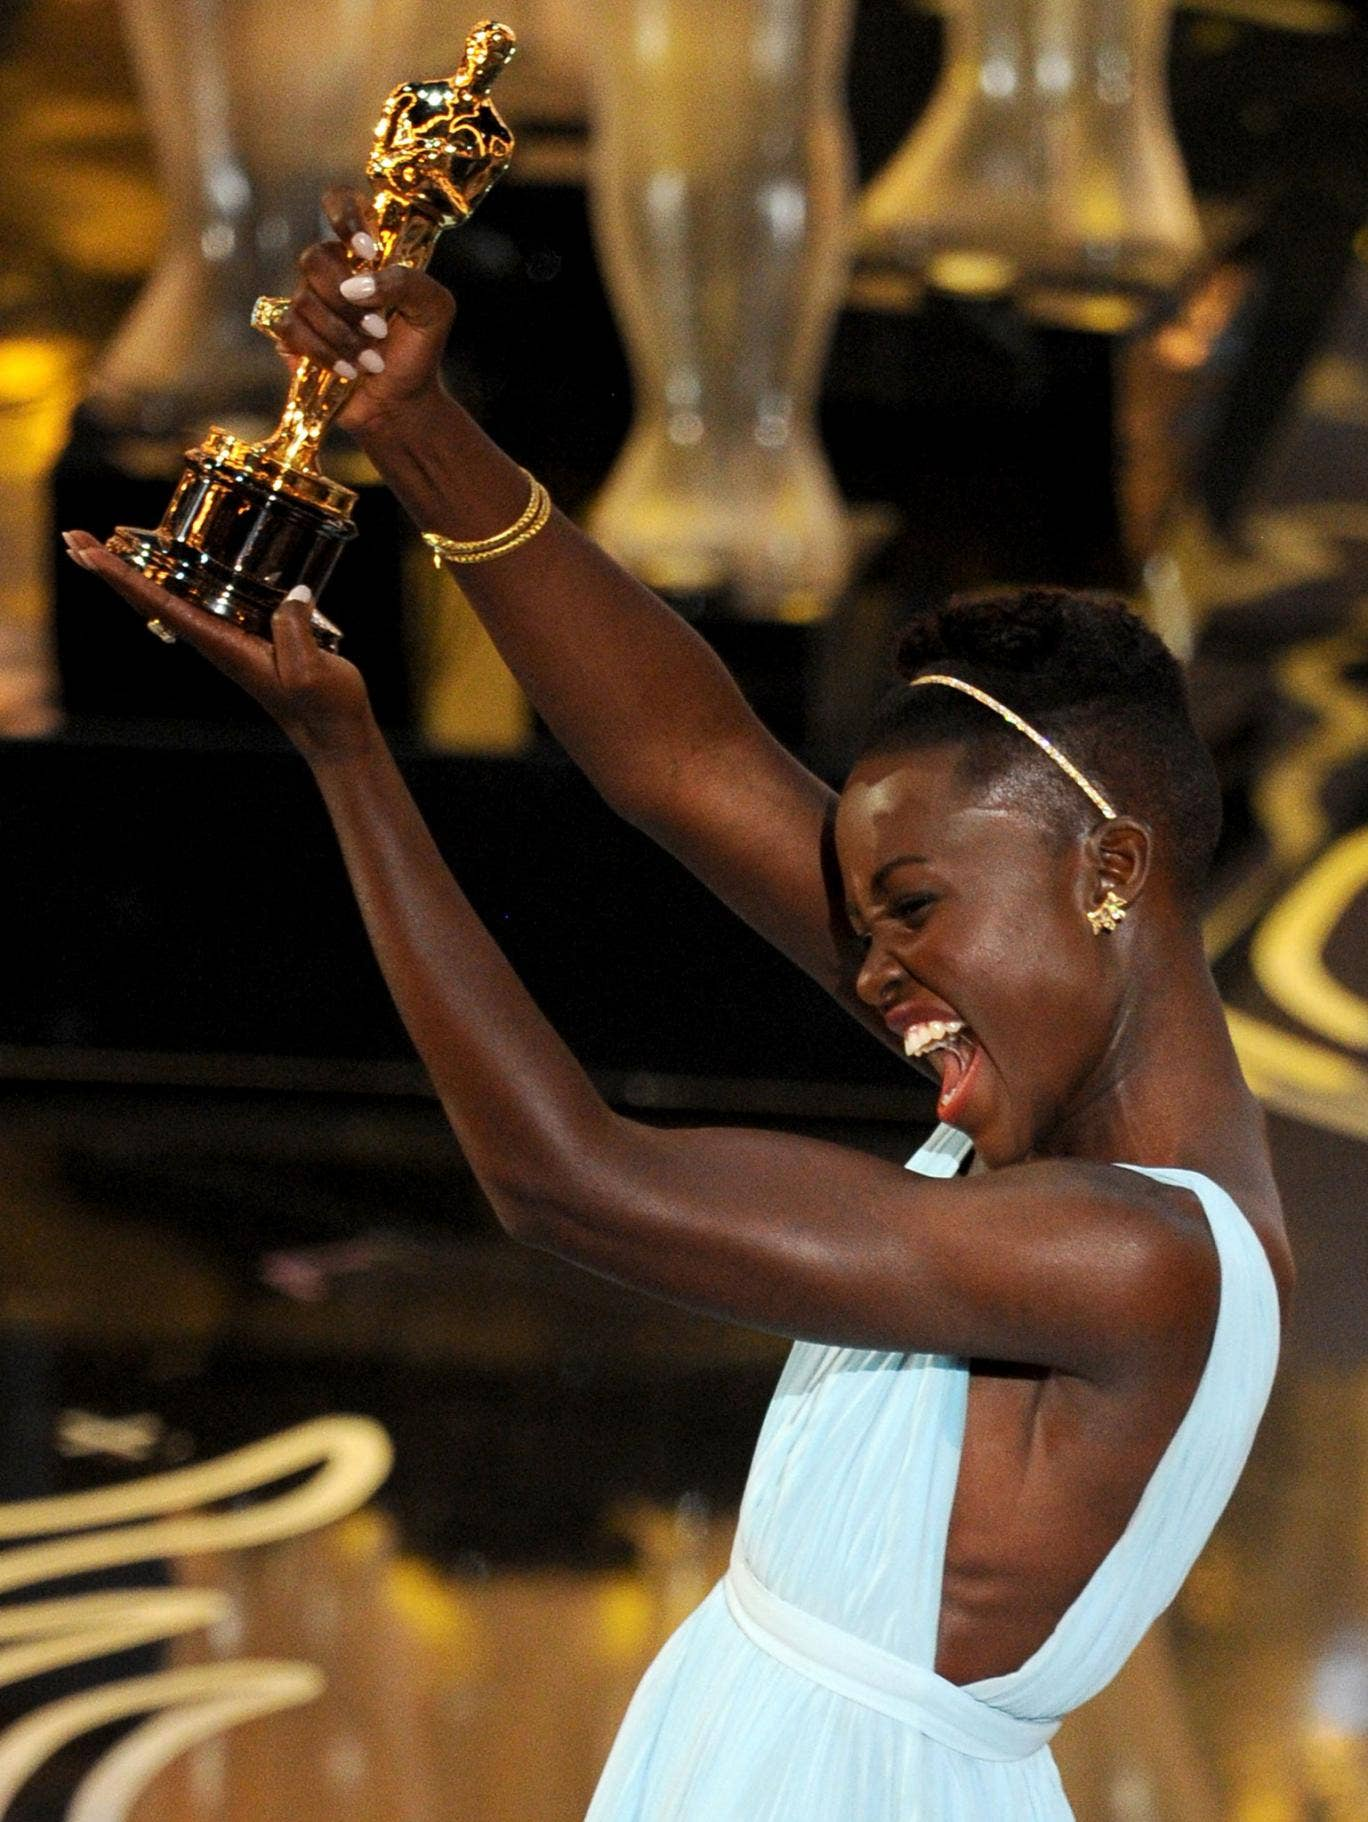 Lupita Nyong'o accepting her Oscar for Best Supporting Actress